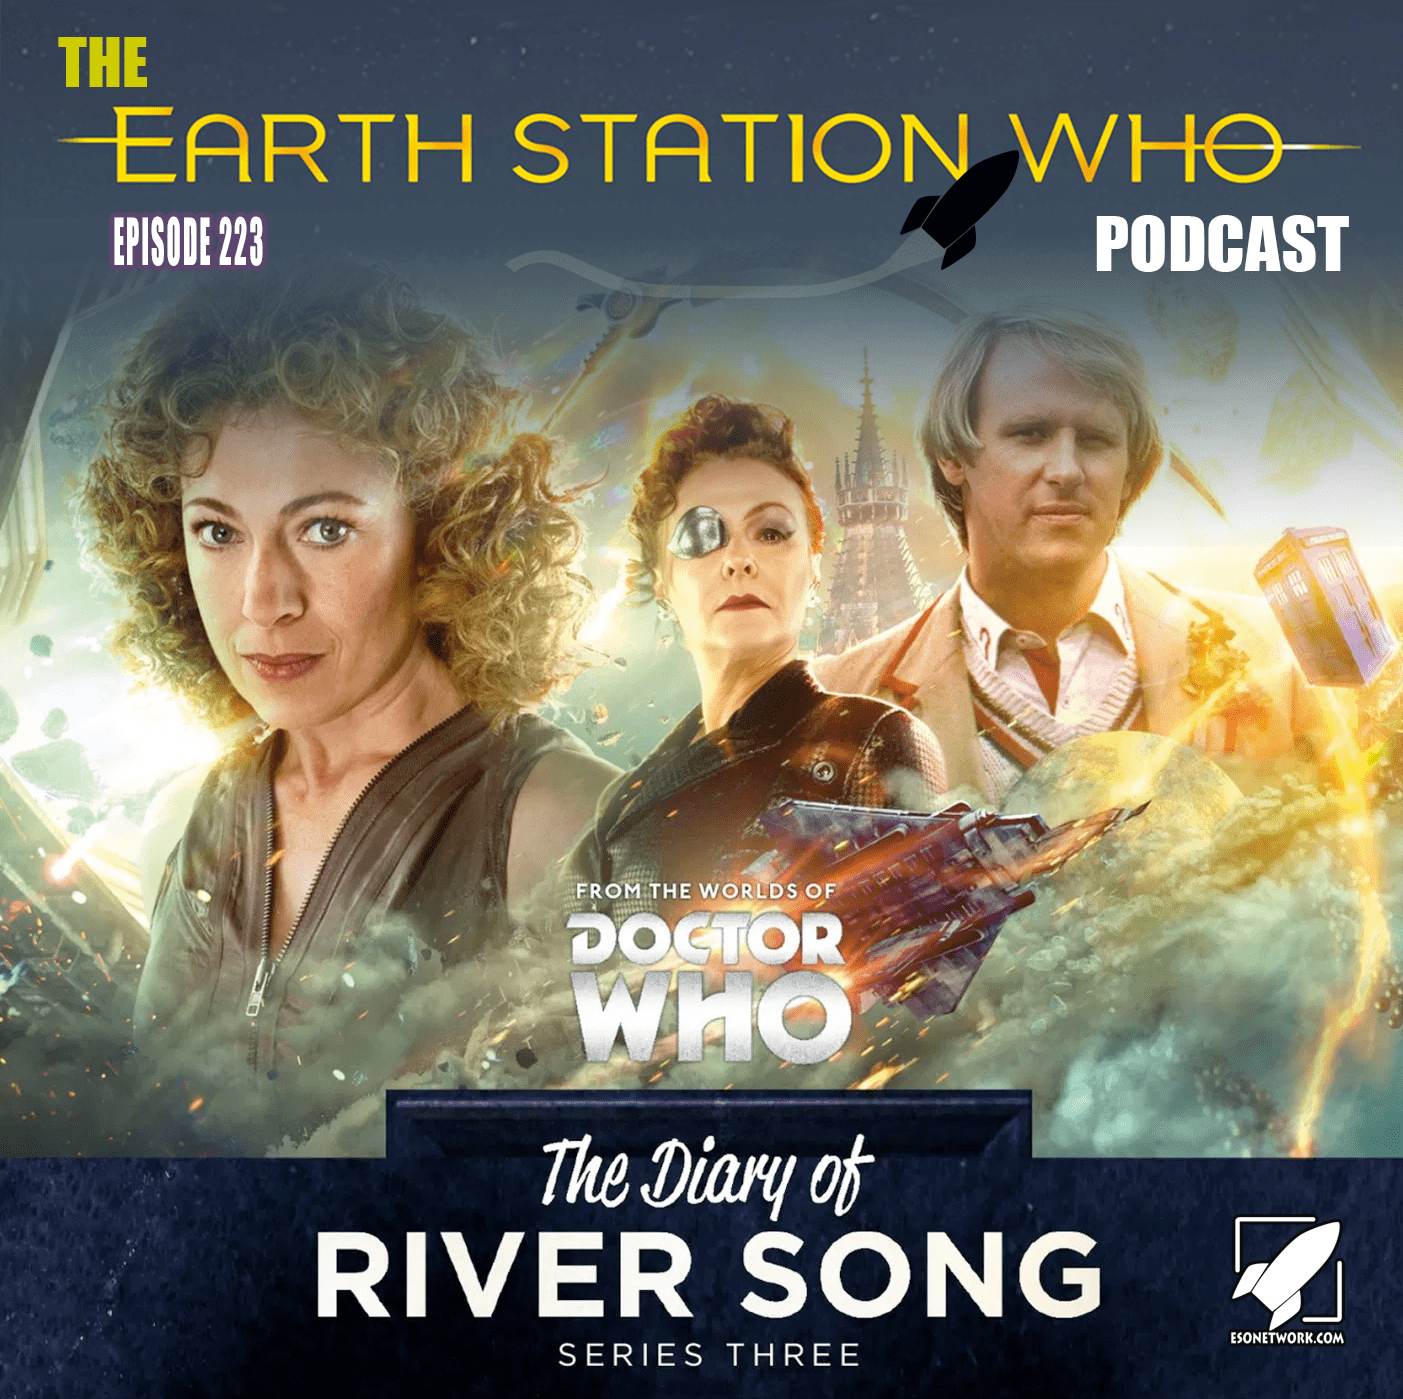 Earth Station Who Podcast Ep 223